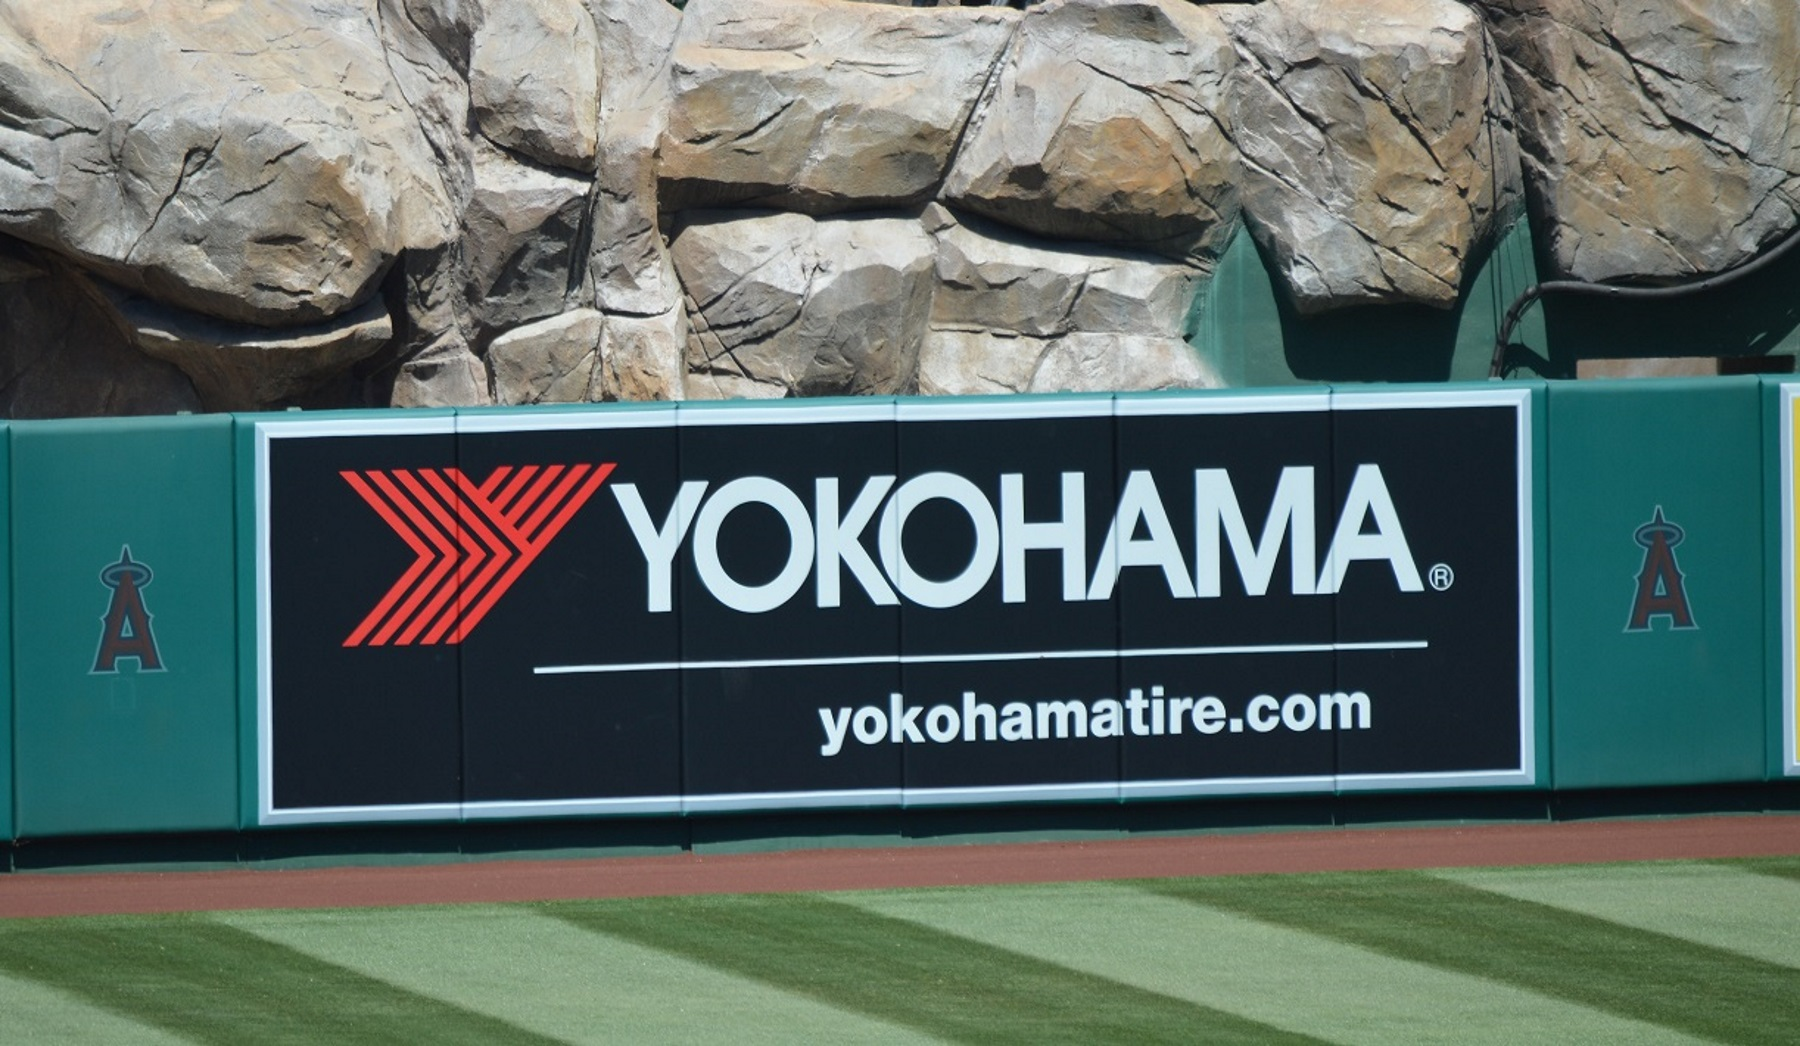 Yokohama Rubber Signs Partnership Agreement with Los Angeles Angels